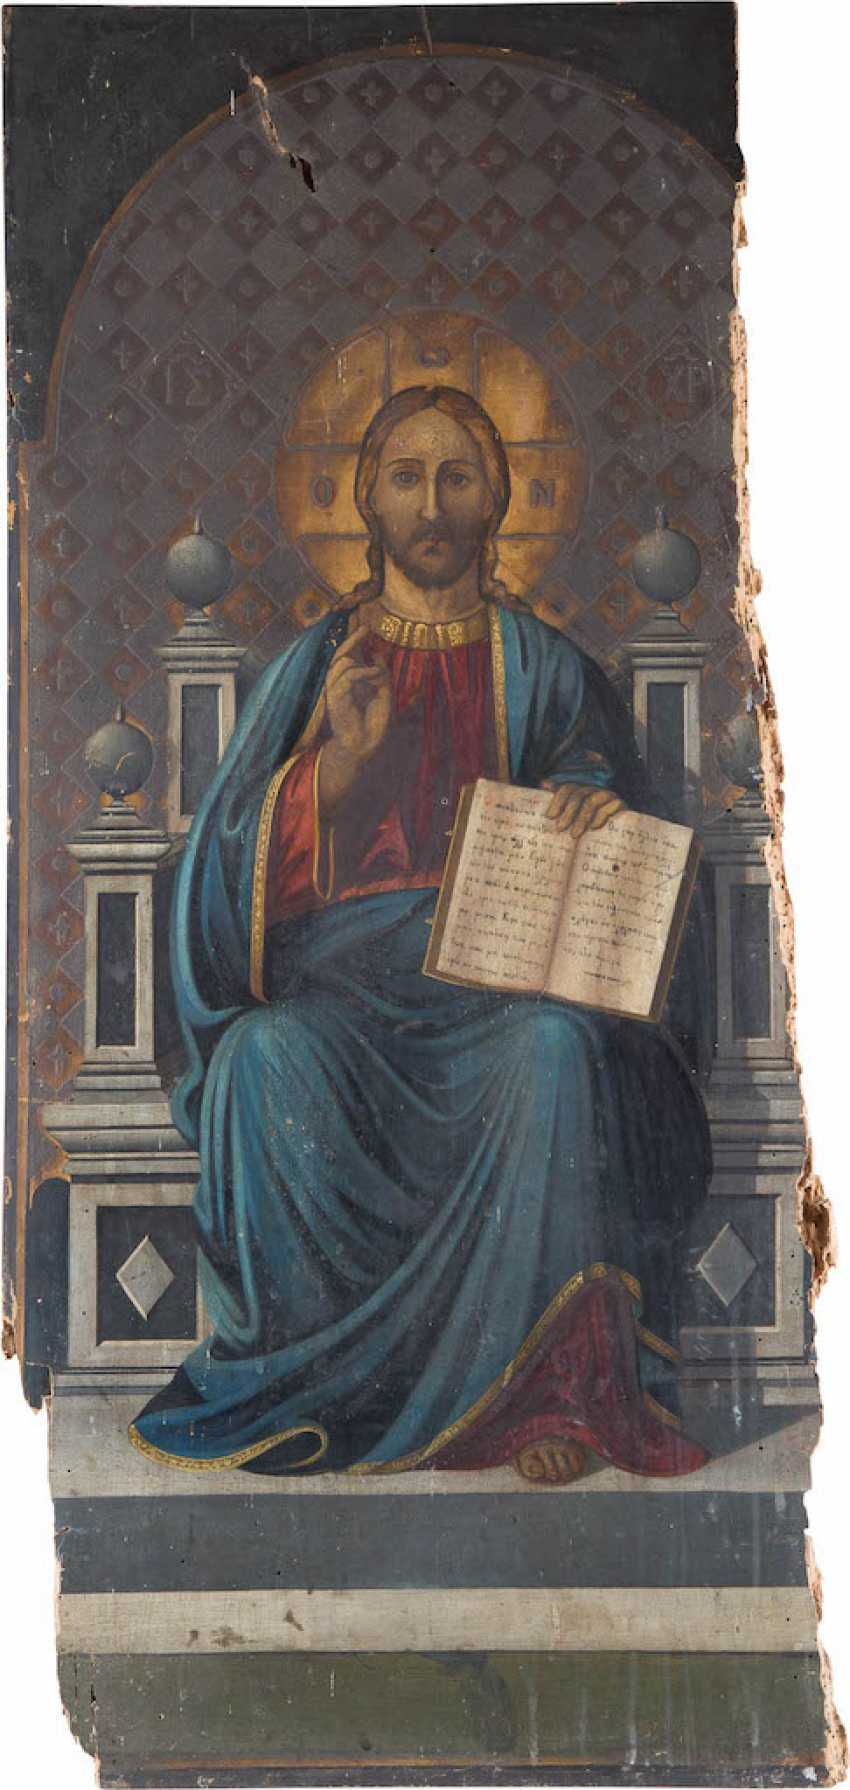 A MONUMENTAL ICON WITH THE ENTHRONED CHRIST, THE RULER OF THE WORLD FROM A CHURCH ICONOSTASIS - photo 1